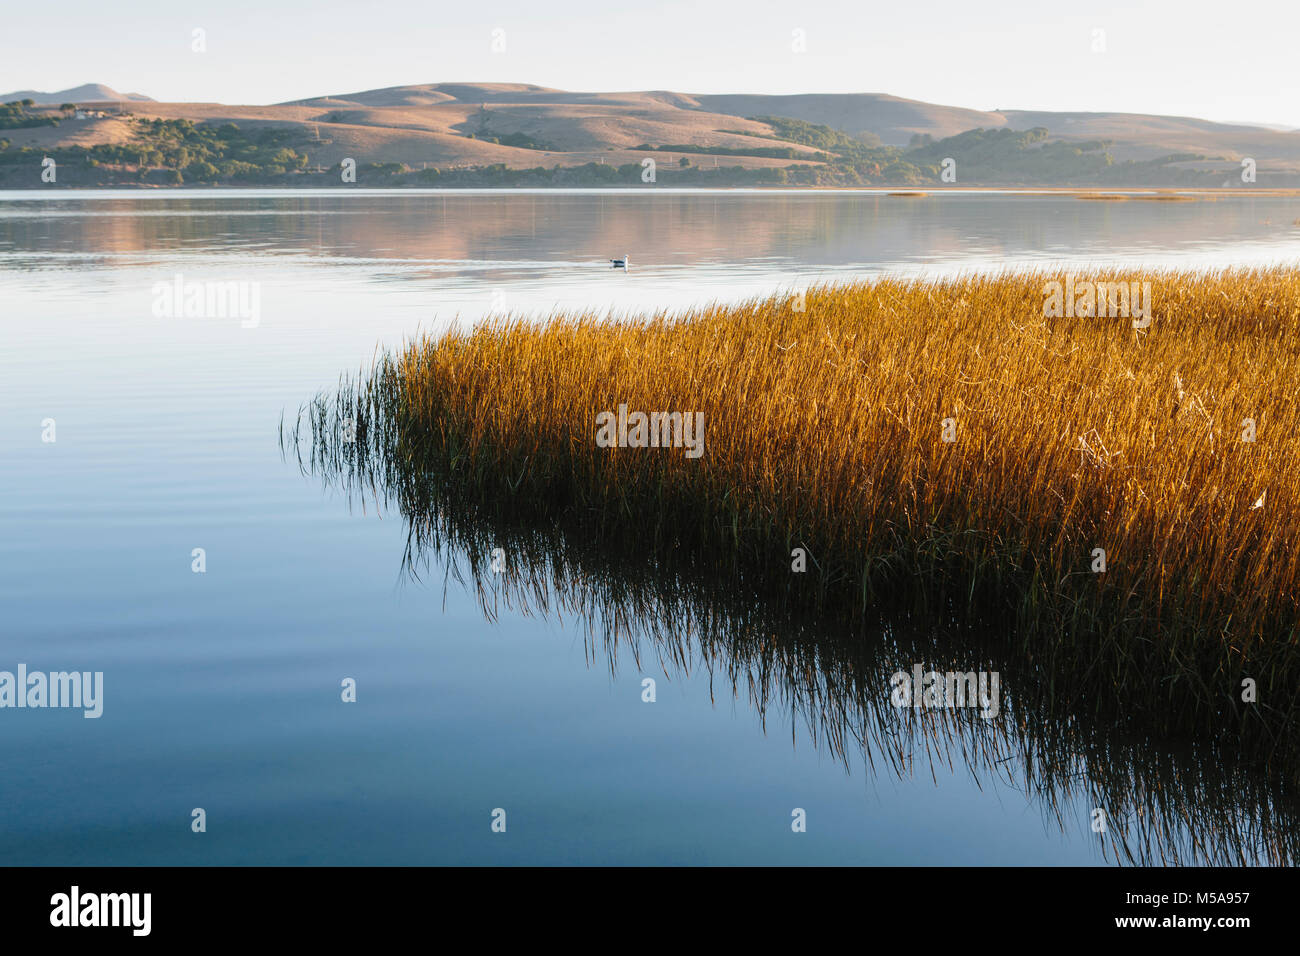 Landscape with bay and open spaces of marshland, hills in the distance. - Stock Image